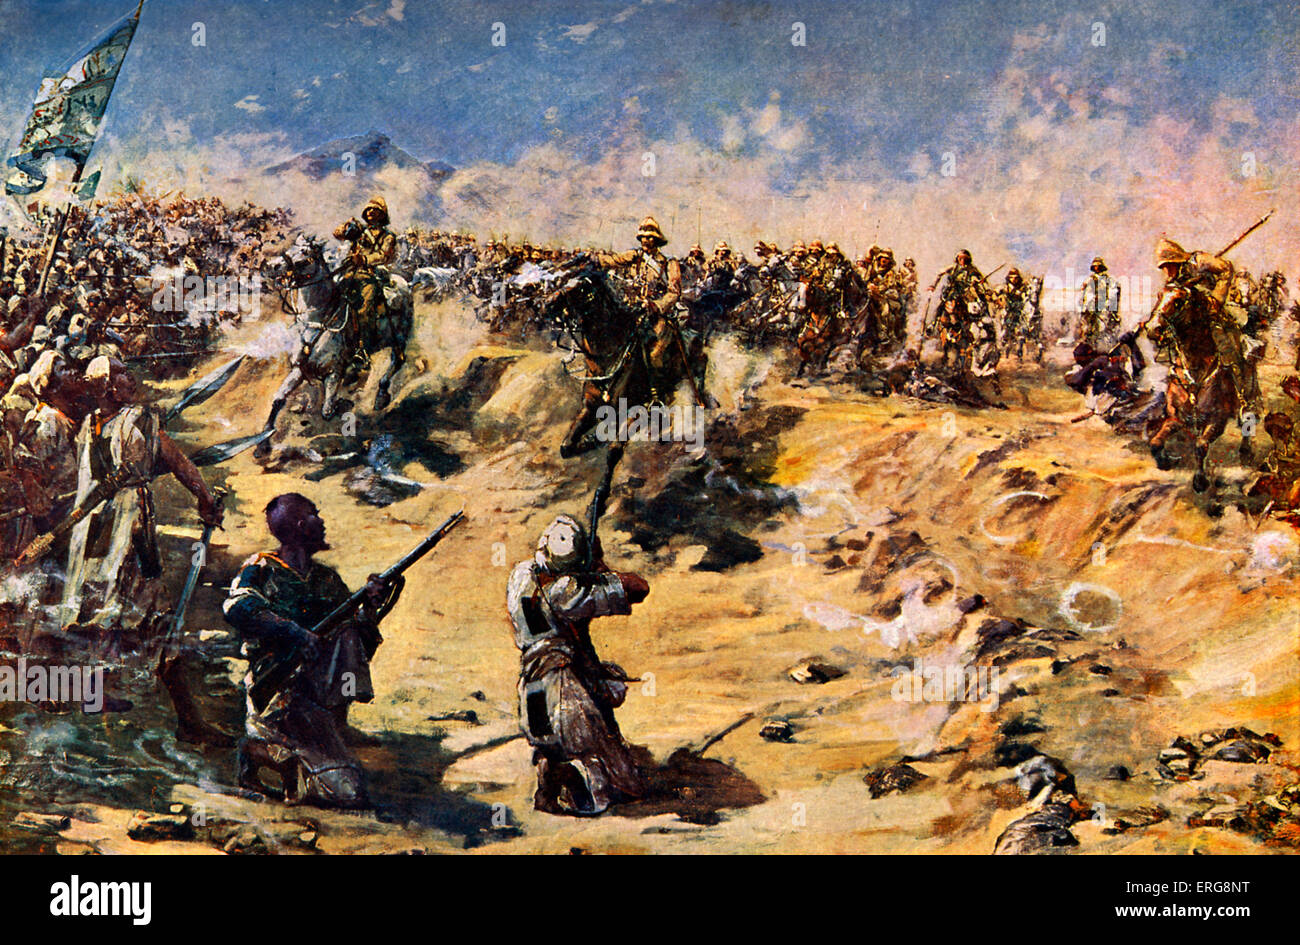 The Charge of the 21st Lancers at Omdurman, 1898. During the Mahdist War. - Stock Image